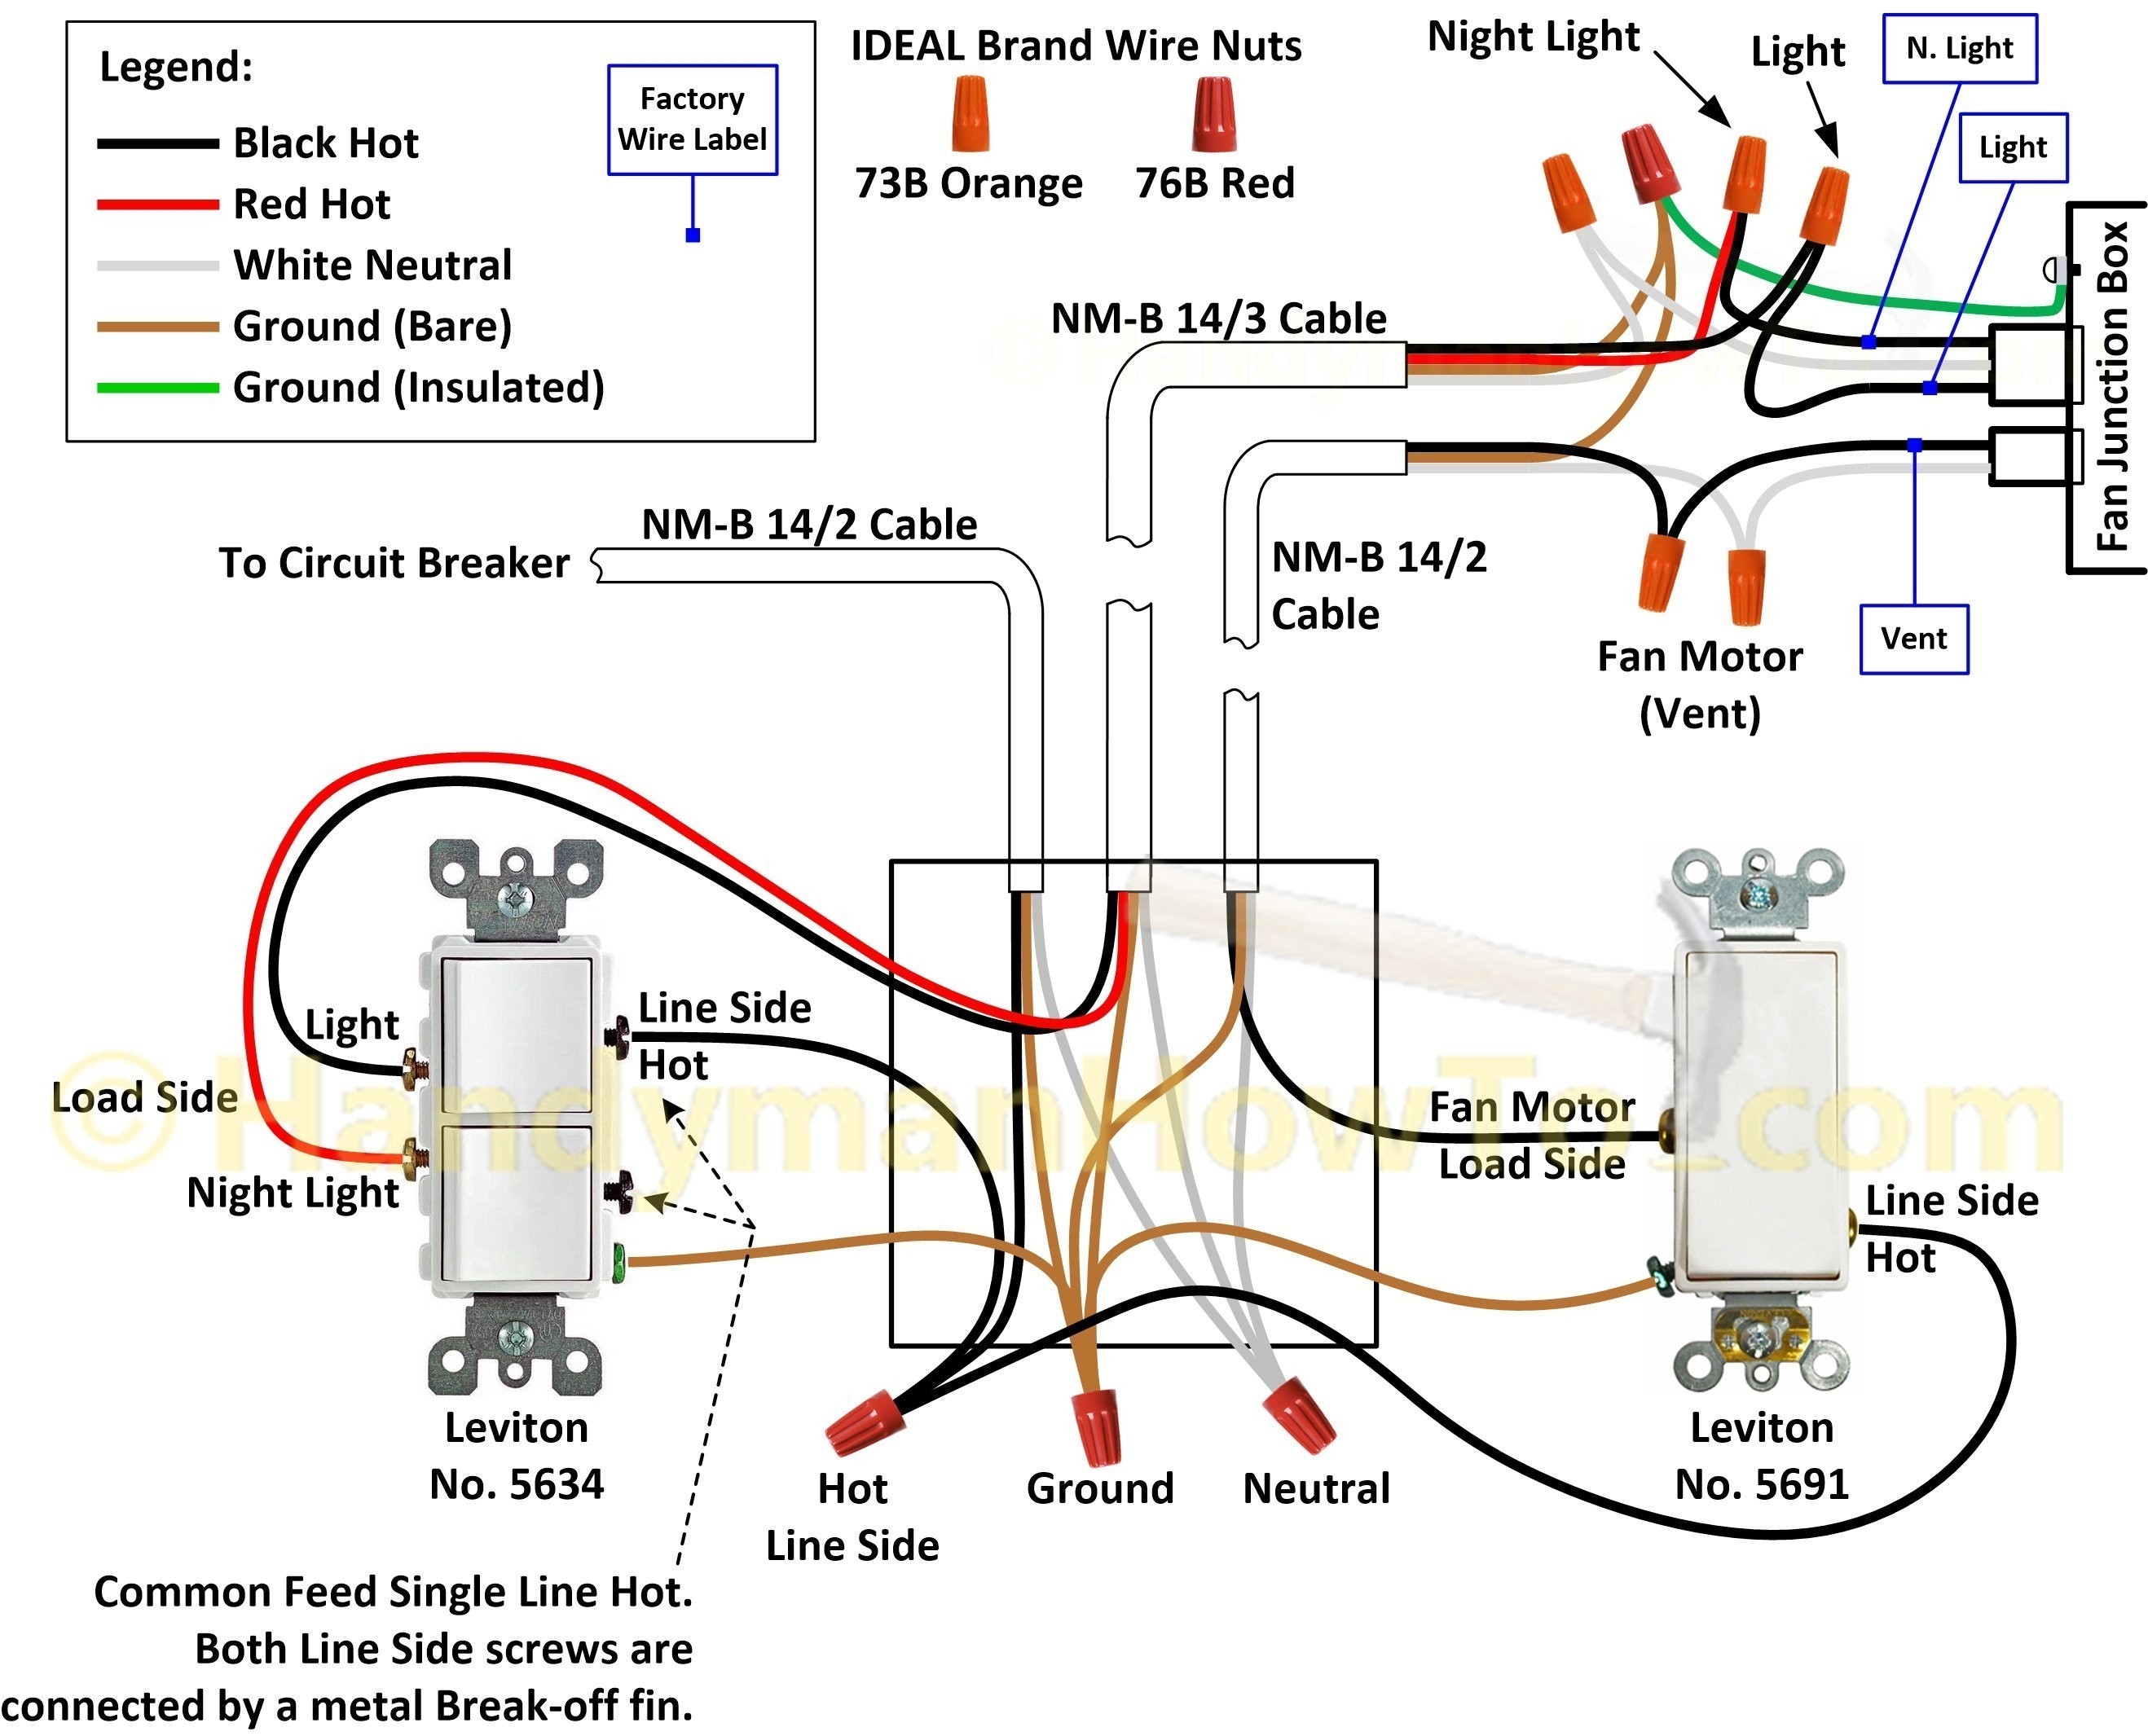 Wiring Diagram For Canarm Exhaust Fan New Bathroom Exhaust Fan With Light Wiring • Exhaust Fans Ideas